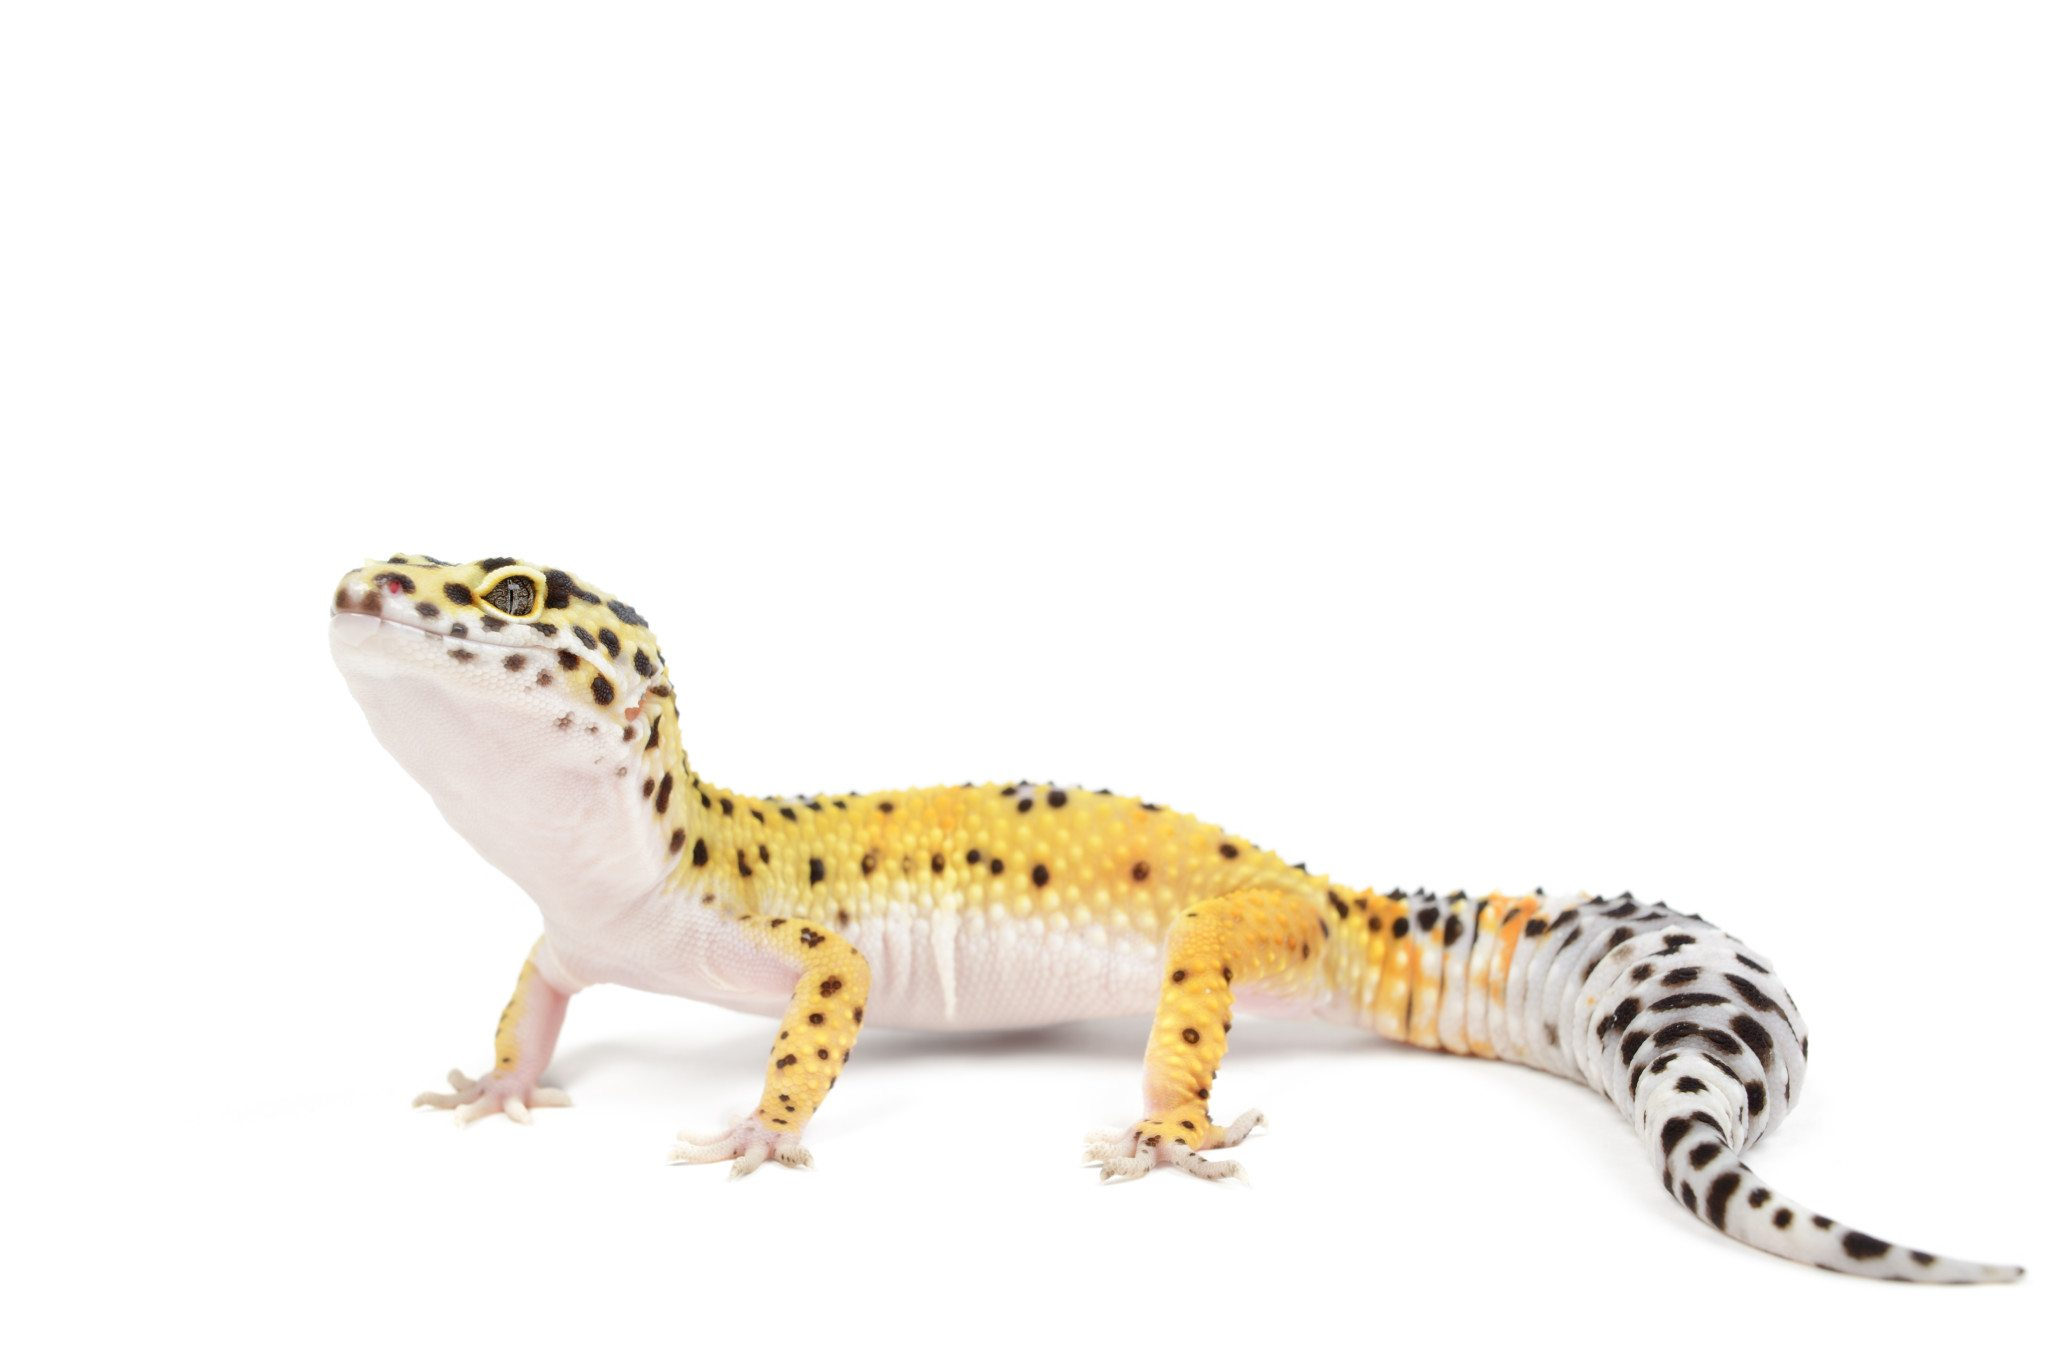 Leopard Gecko Facts 6